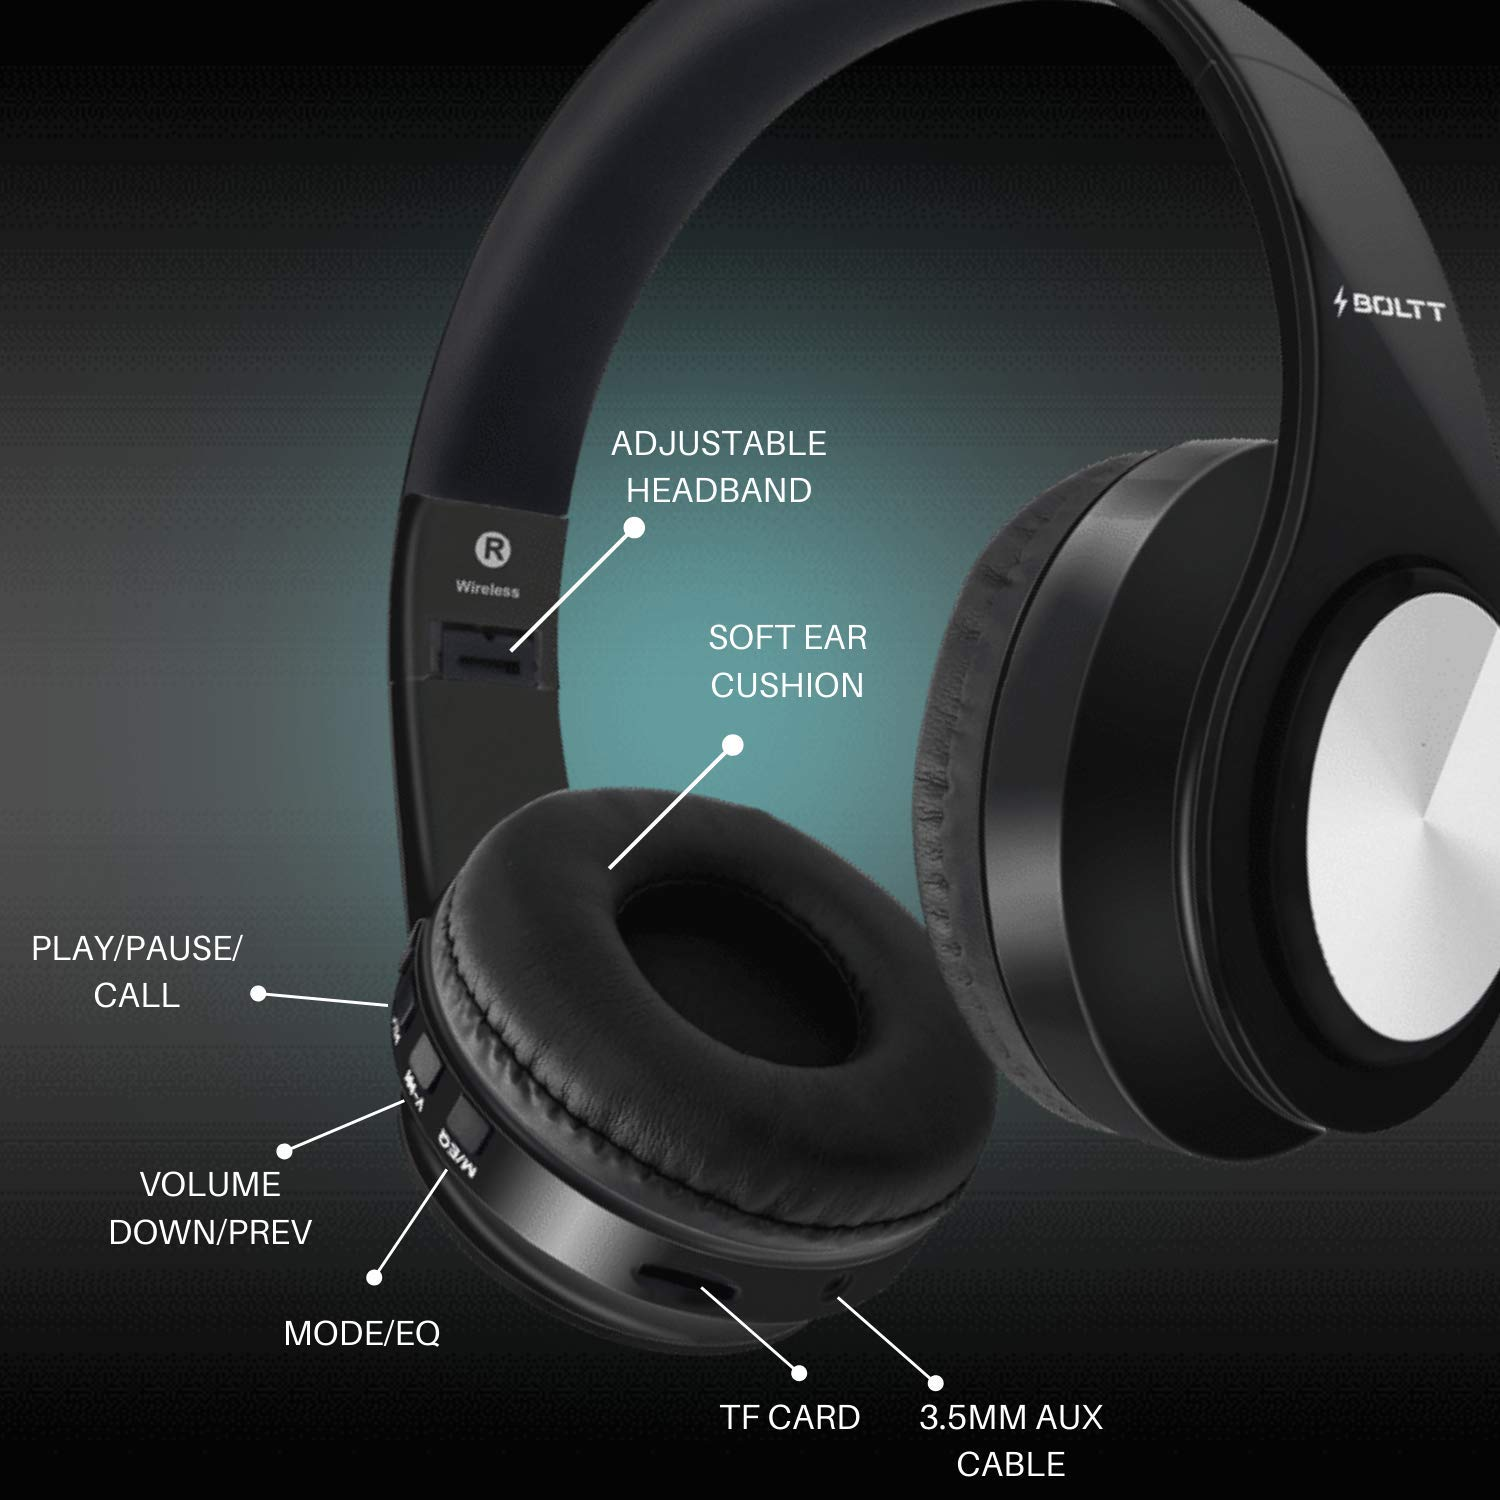 Best Fire Boltt Blast 1000 Hi Fi Stereo Over Ear Bluetooth Headphones With Foldable Earmuffs 20 Hours Playtime Built In Mic Best Price With Best Deal In Your City